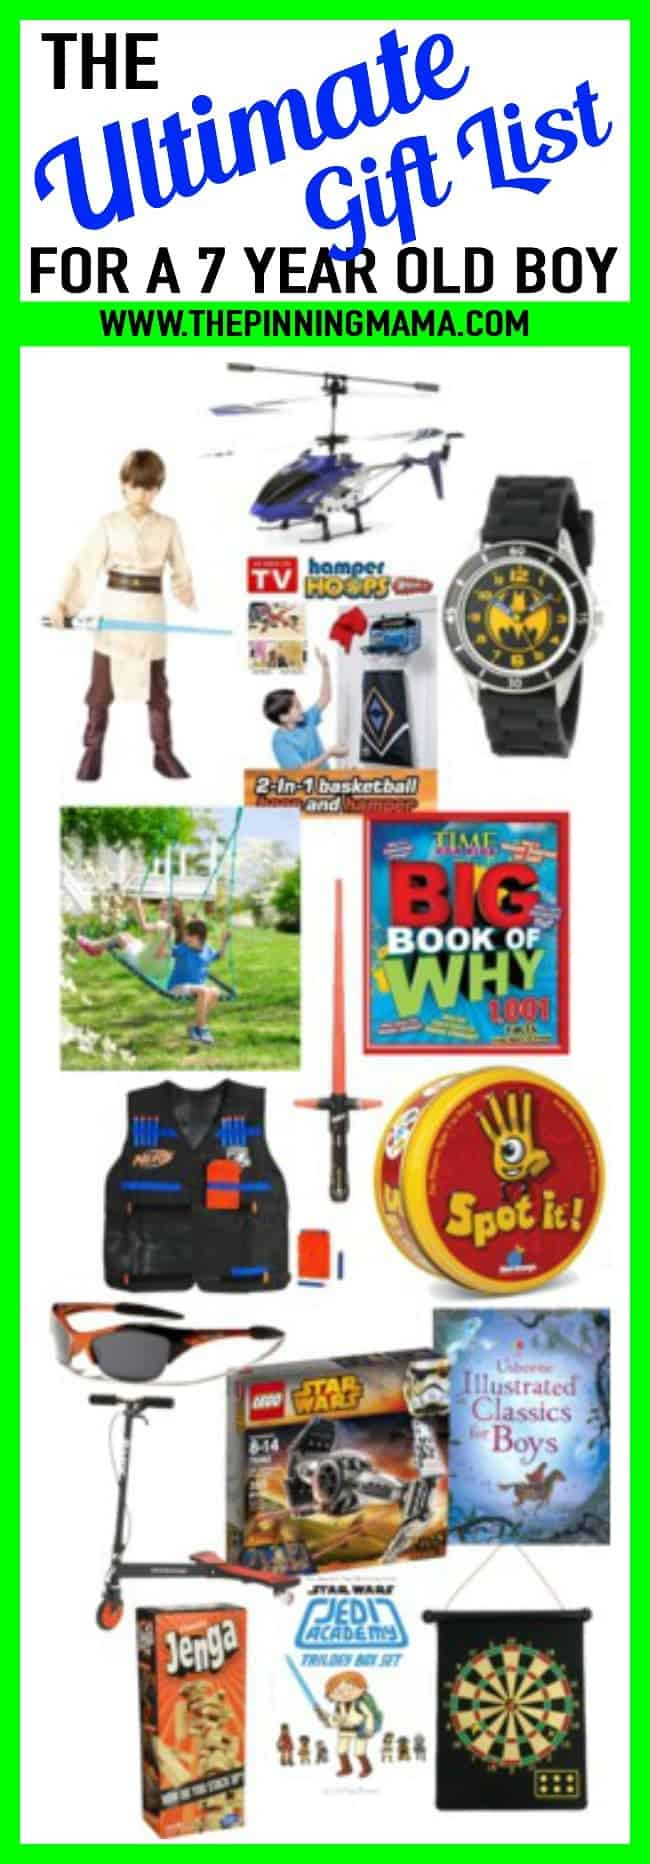 7 Year Old Boy Birthday Gift  BEST Gift Ideas for a 7 Year Old Boy • The Pinning Mama